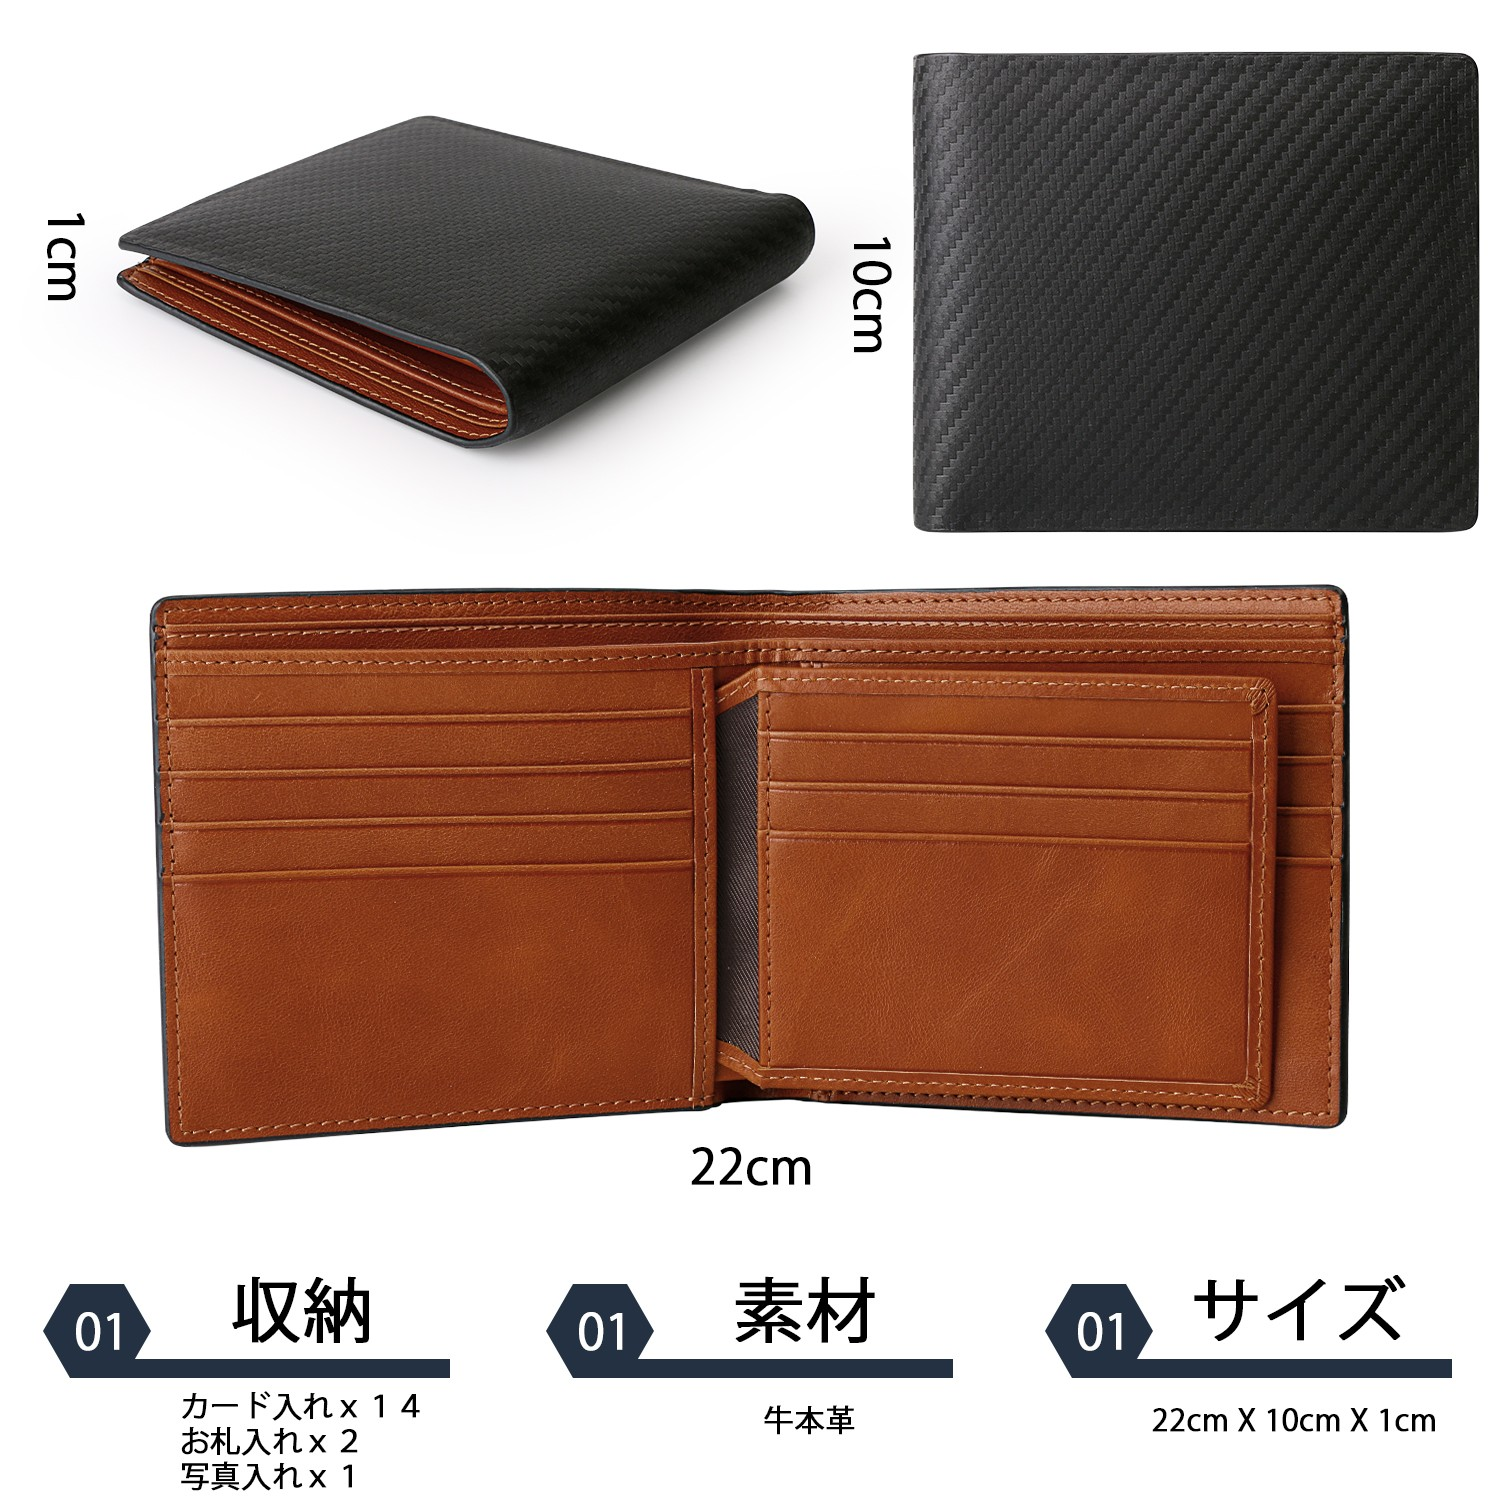 AIVI mens leather wallet with coin pocket online for iphone 8 / 8plus-7